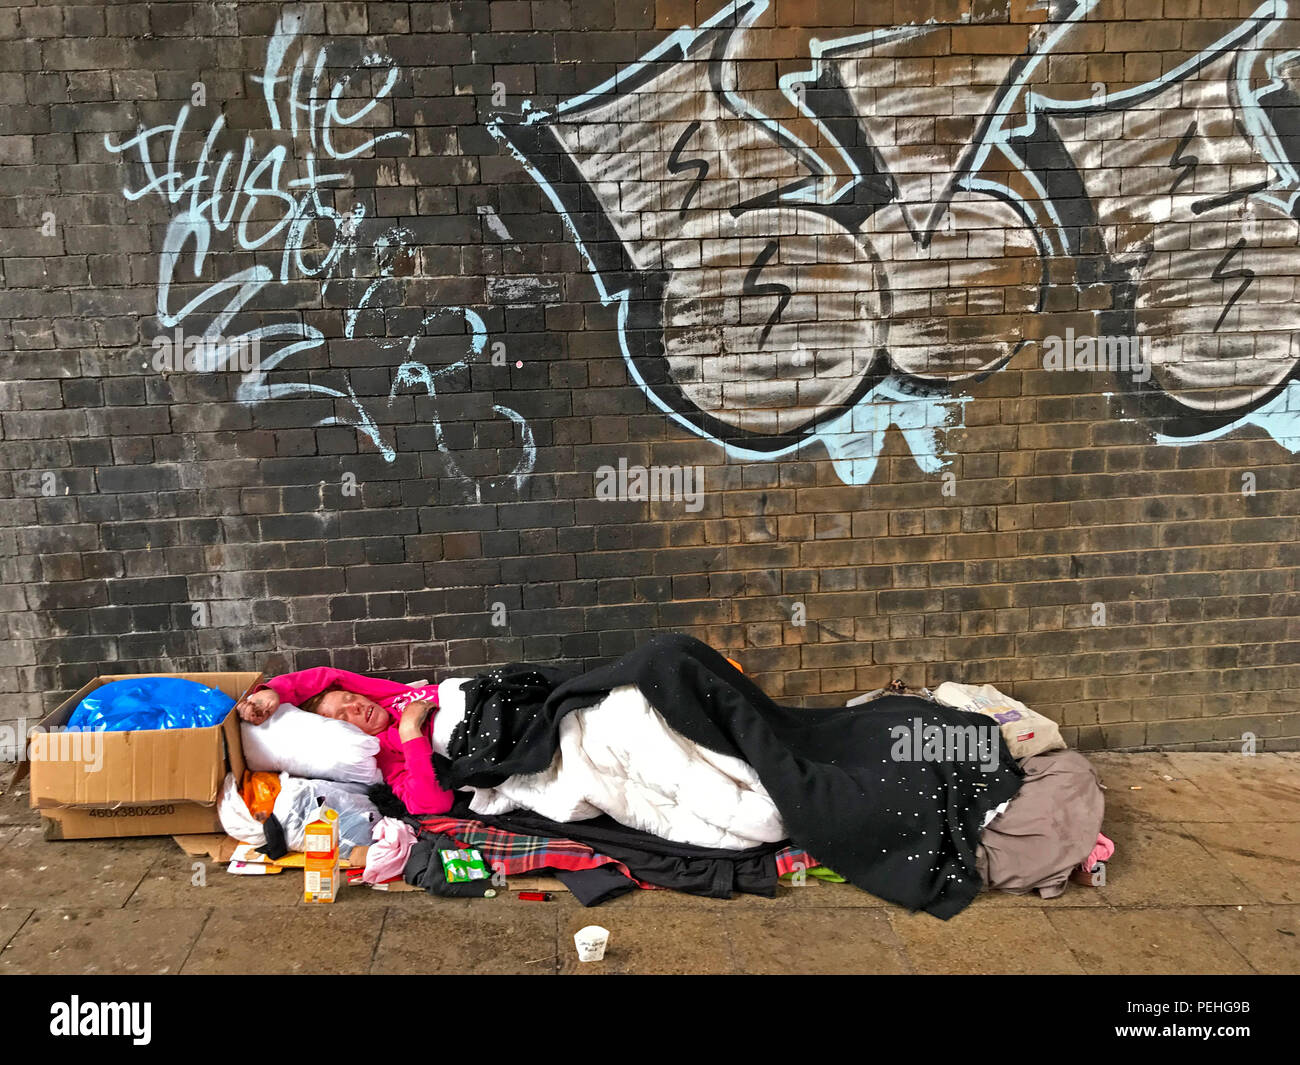 HotpixUK,GoTonySmith,Homelessness,homeless,without a home,rail arch,dry place,city centre,town centre,GB,Great Britain,housing policy,failure,UKhousing,Socialhousing,lack of social housing,under a railway arch,North West England,UK,Spice,in the open,dangers on the street,street dangers,Castlefield,City Centre,Rough sleeper,Homelessness problem,English homelessness,British homelessness,homelessness crisis,Sleeping outside,sleeping under railway viaduct,viaduct,Manchester Homelessness,Manchester rough sleepers,Manchester rough sleeper,outdoors,outside